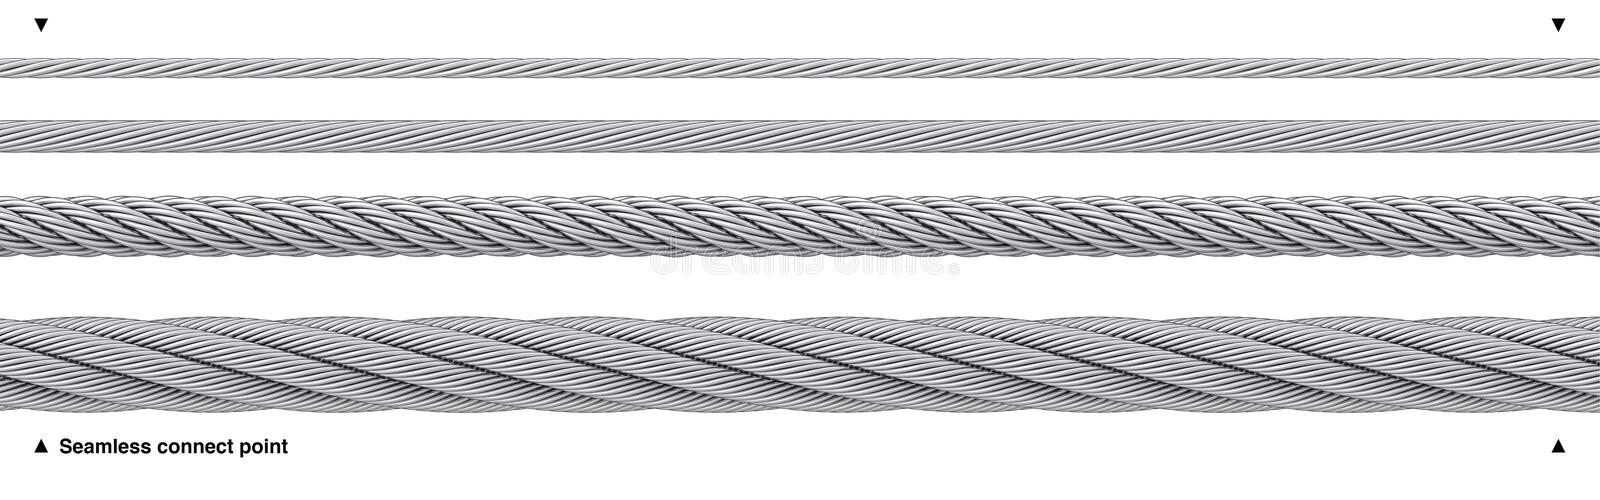 Seamless Steel Cable Repeatable Wire Rope Stock Image - Illustration ...